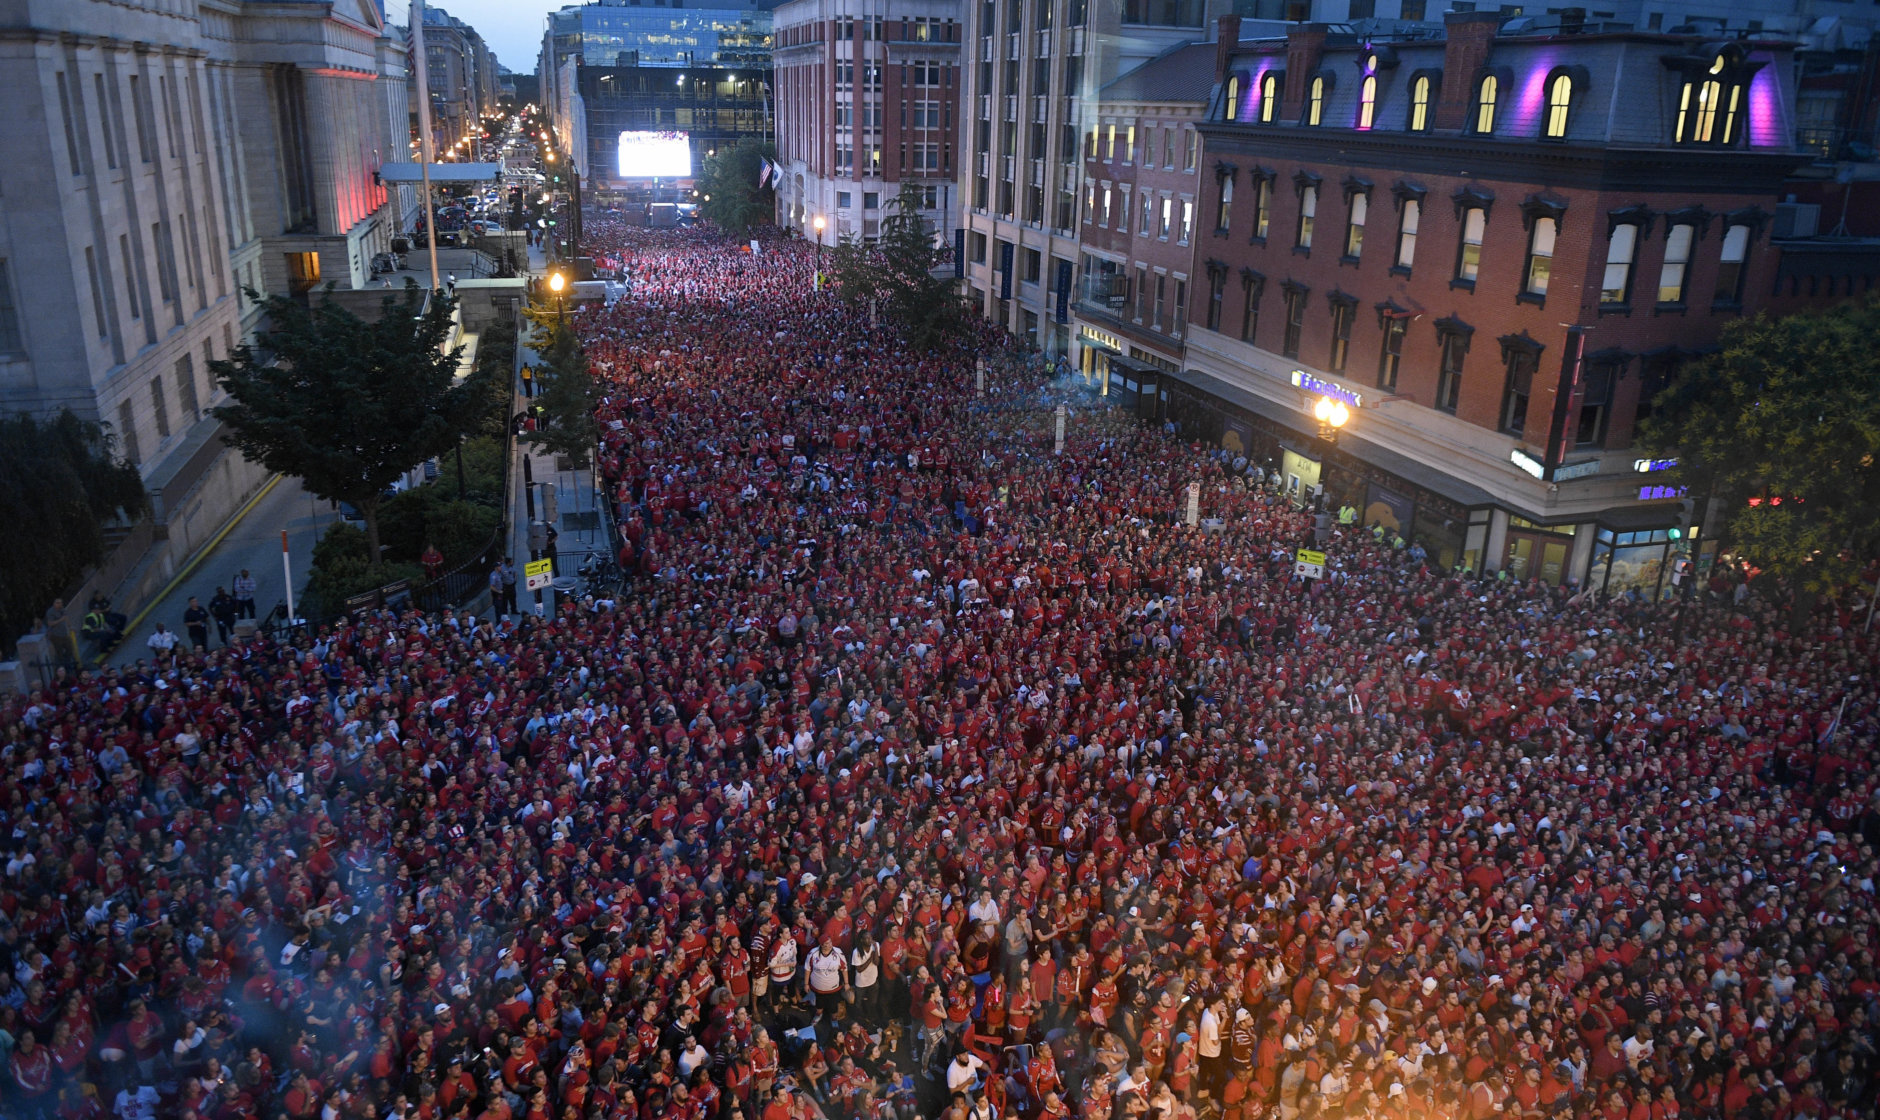 Fans gather outside Capital One Arena at a viewing party for Game 5 of the NHL hockey Stanley Cup Finals between the Washington Capitals and the Vegas Golden Knights, Thursday, June 7, 2018, in Washington. (AP Photo/Nick Wass)